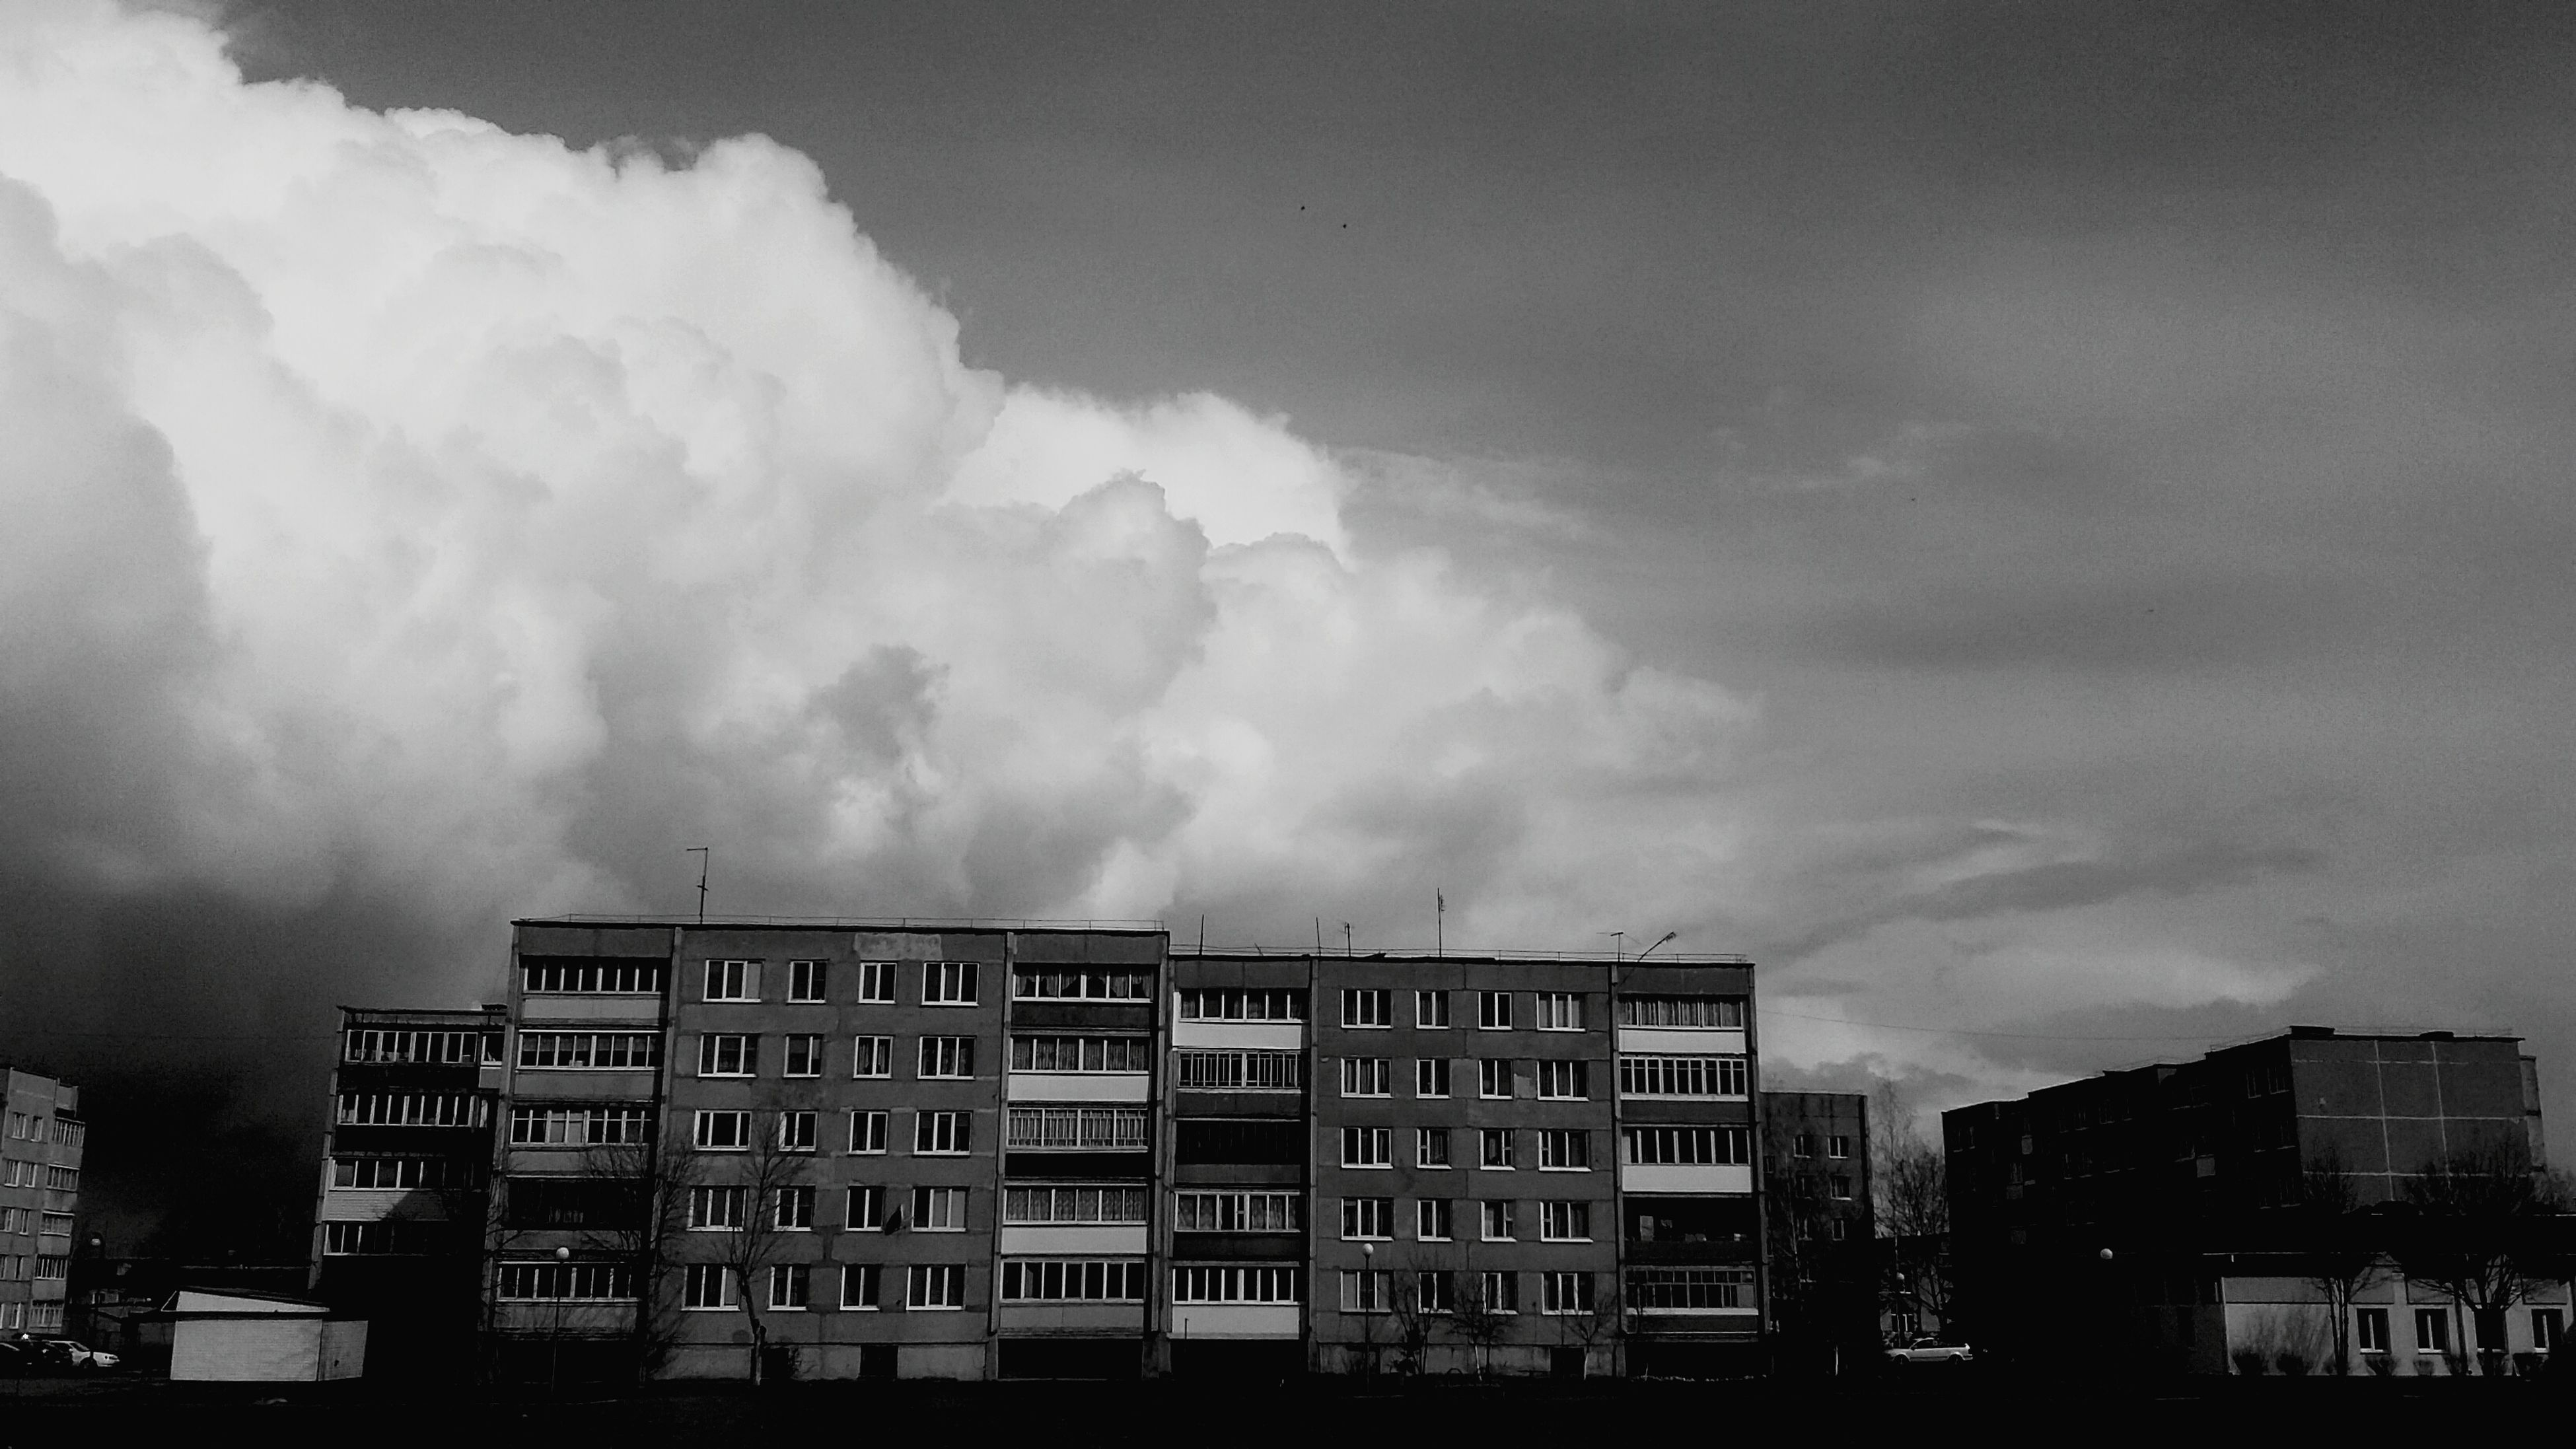 building exterior, architecture, built structure, sky, cloud - sky, cloudy, city, overcast, weather, residential building, low angle view, building, storm cloud, residential structure, cloud, outdoors, no people, apartment, dusk, residential district